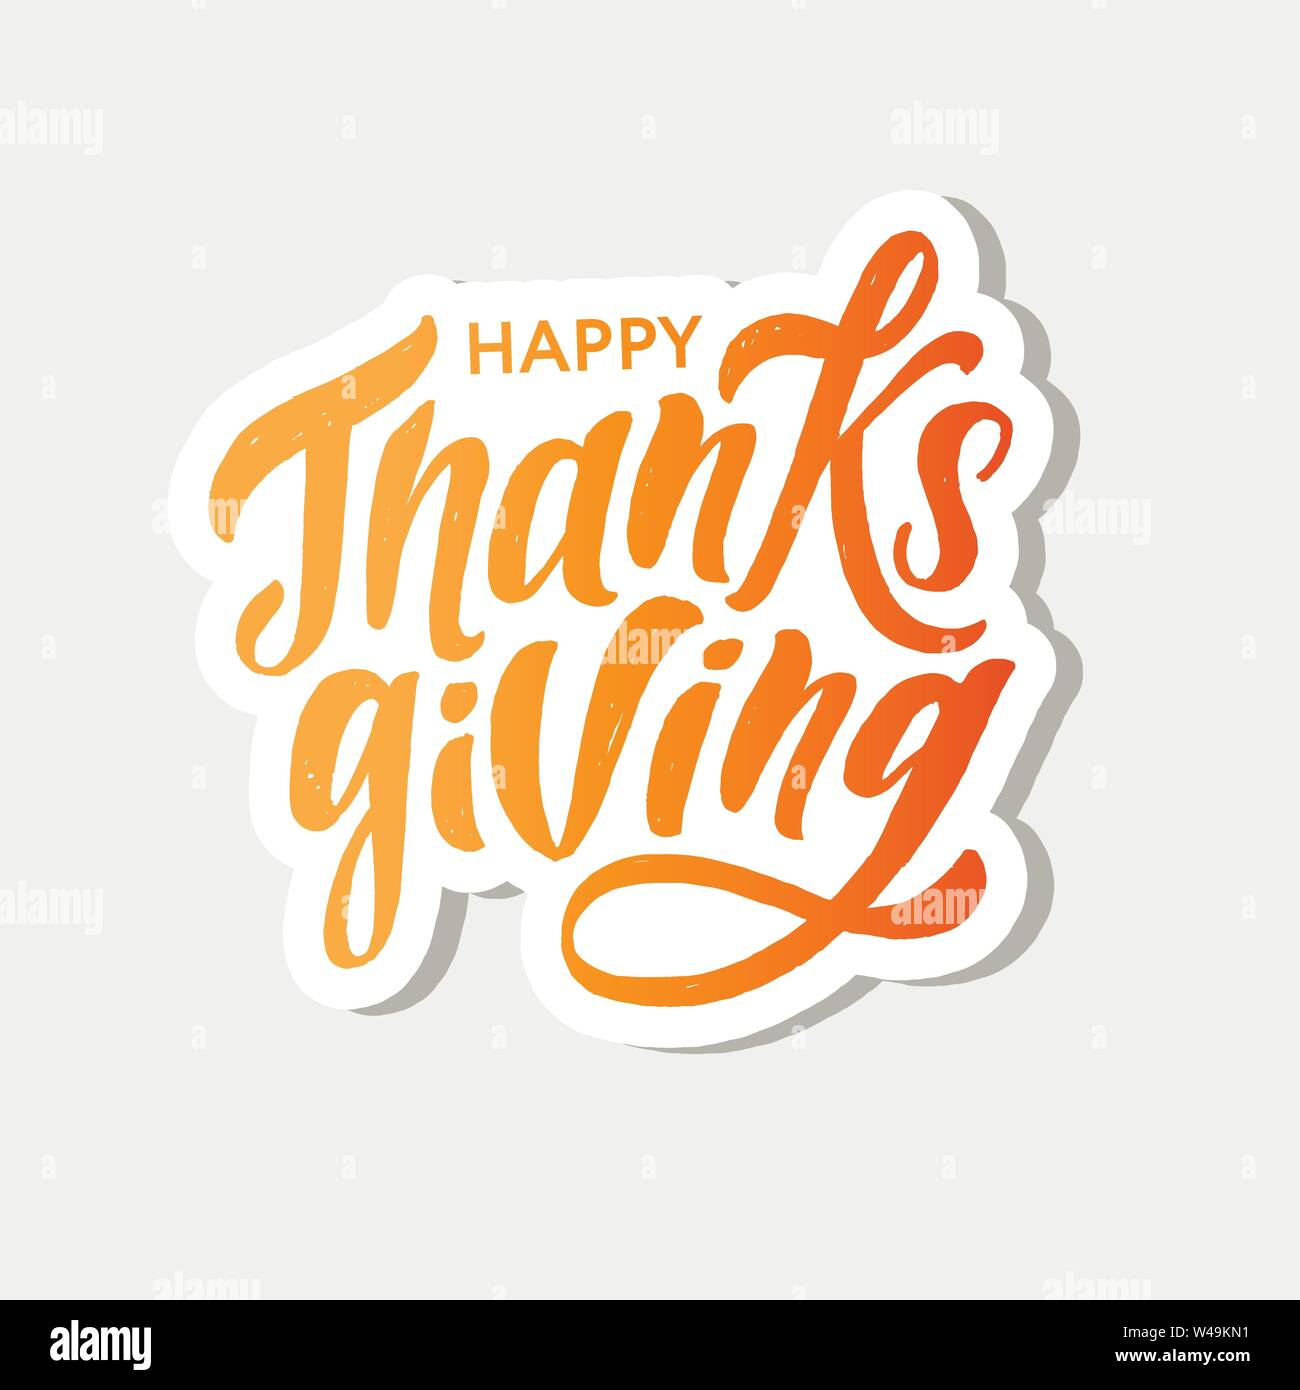 Happy Thanksgiving lettering Calligraphy Brush Text Holiday Vector Sticker Watercolor illustration - Stock Image